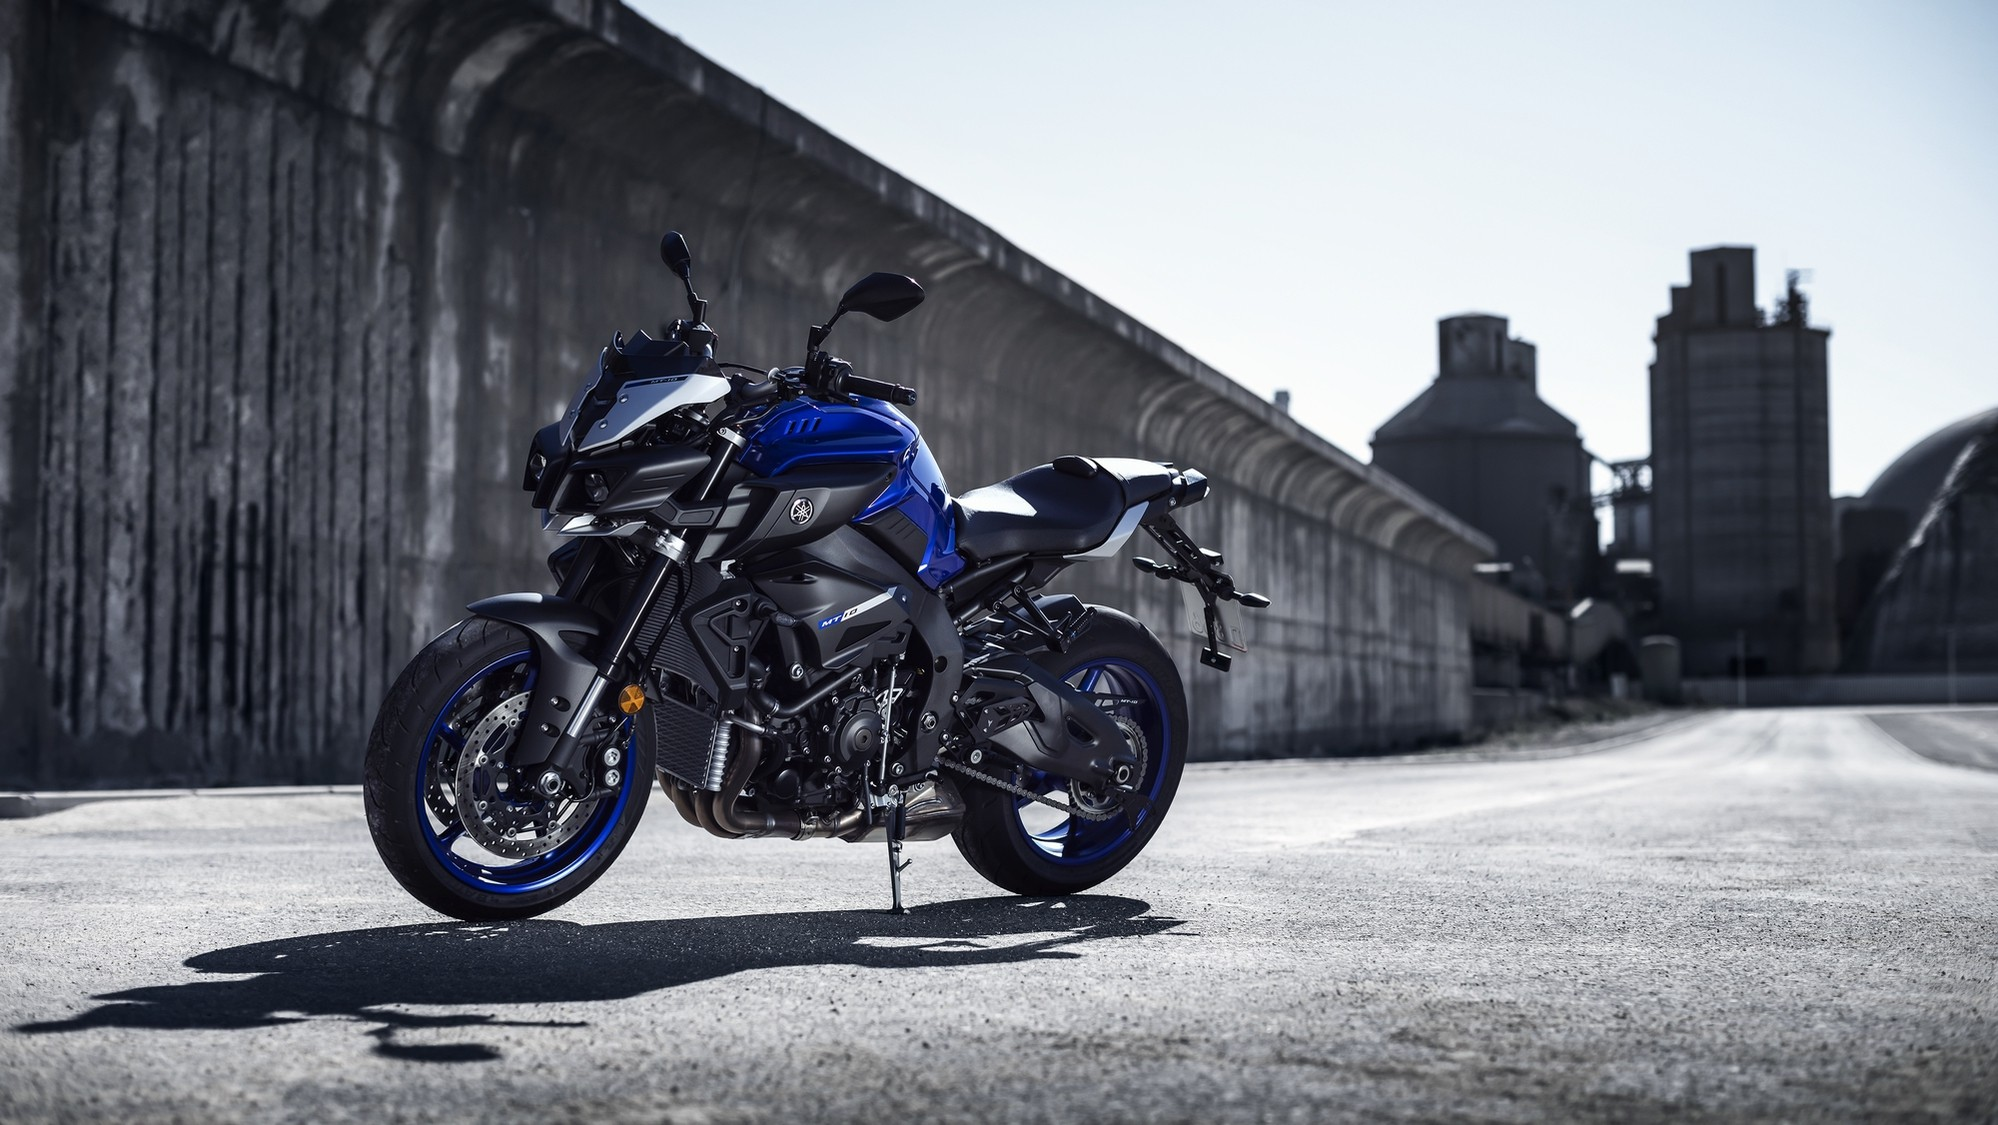 Aftermarket Car Yamaha Mt-10 Gets A Full List Of Accessories And Can